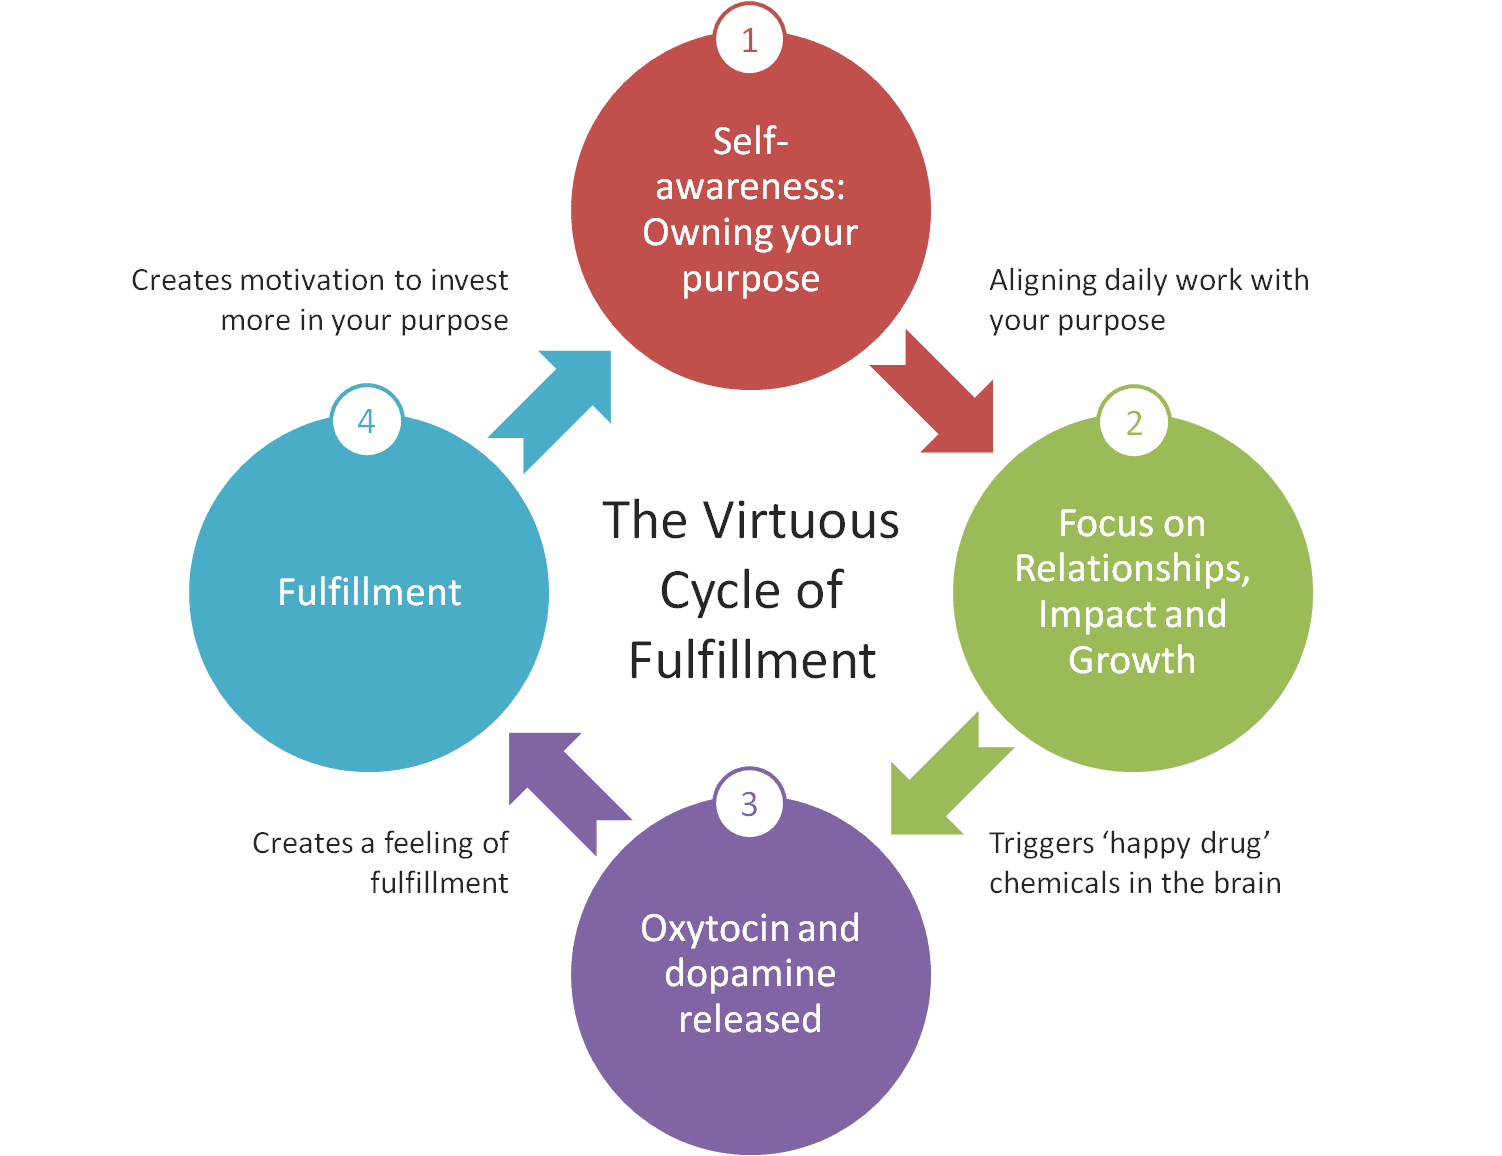 The Virtuous Cycle of Fulfillment